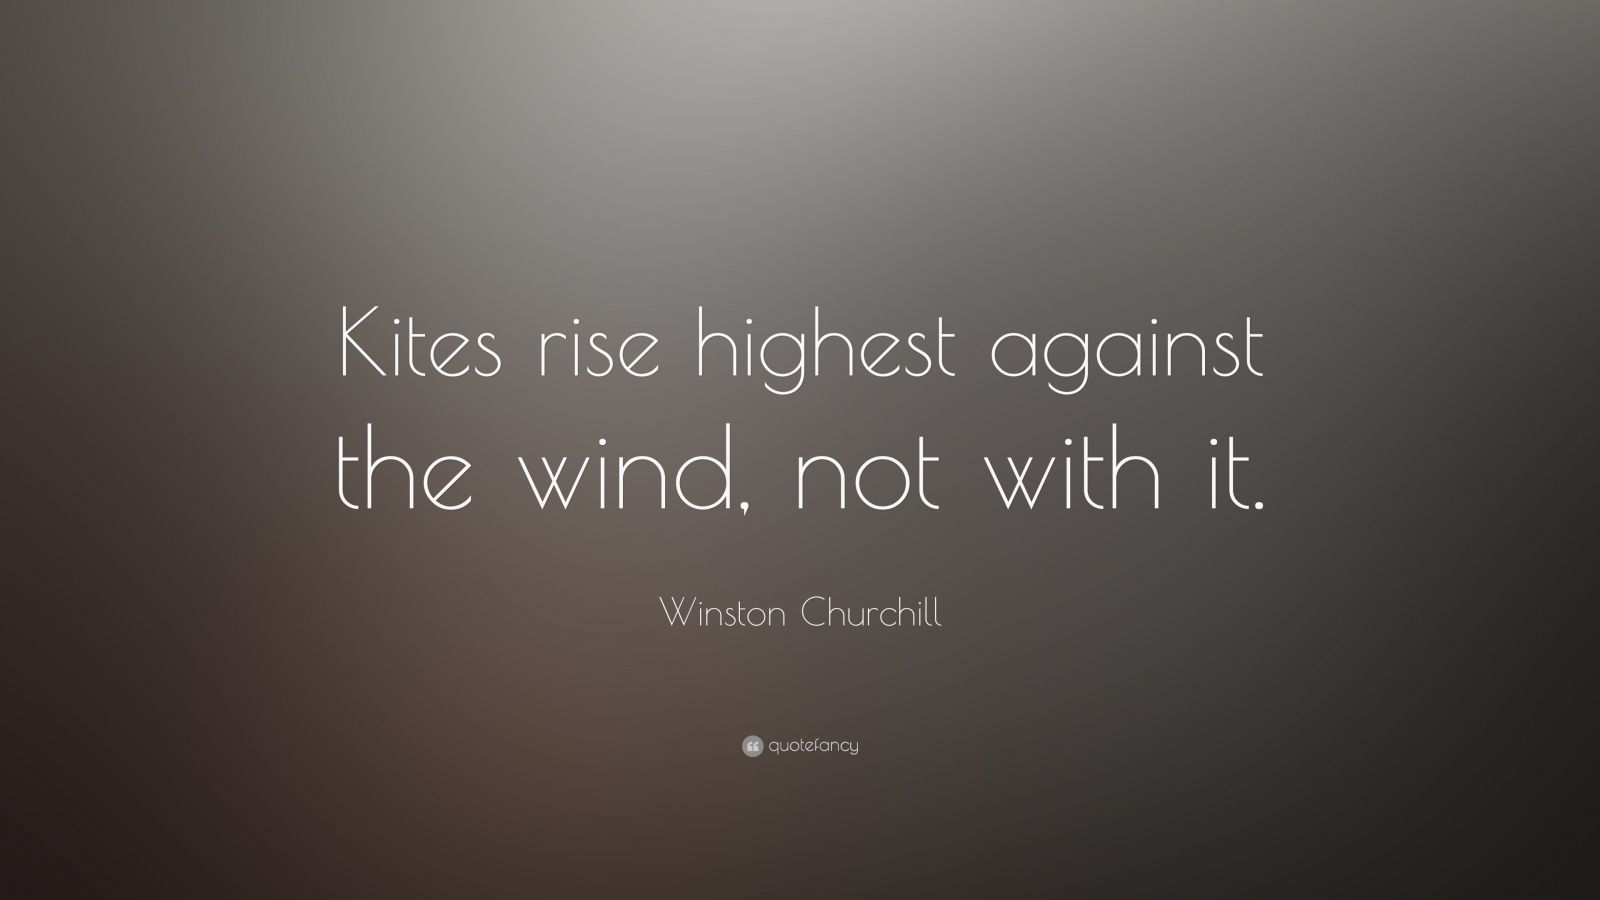 Elon Musk Quotes Wallpapers Winston Churchill Quote Kites Rise Highest Against The